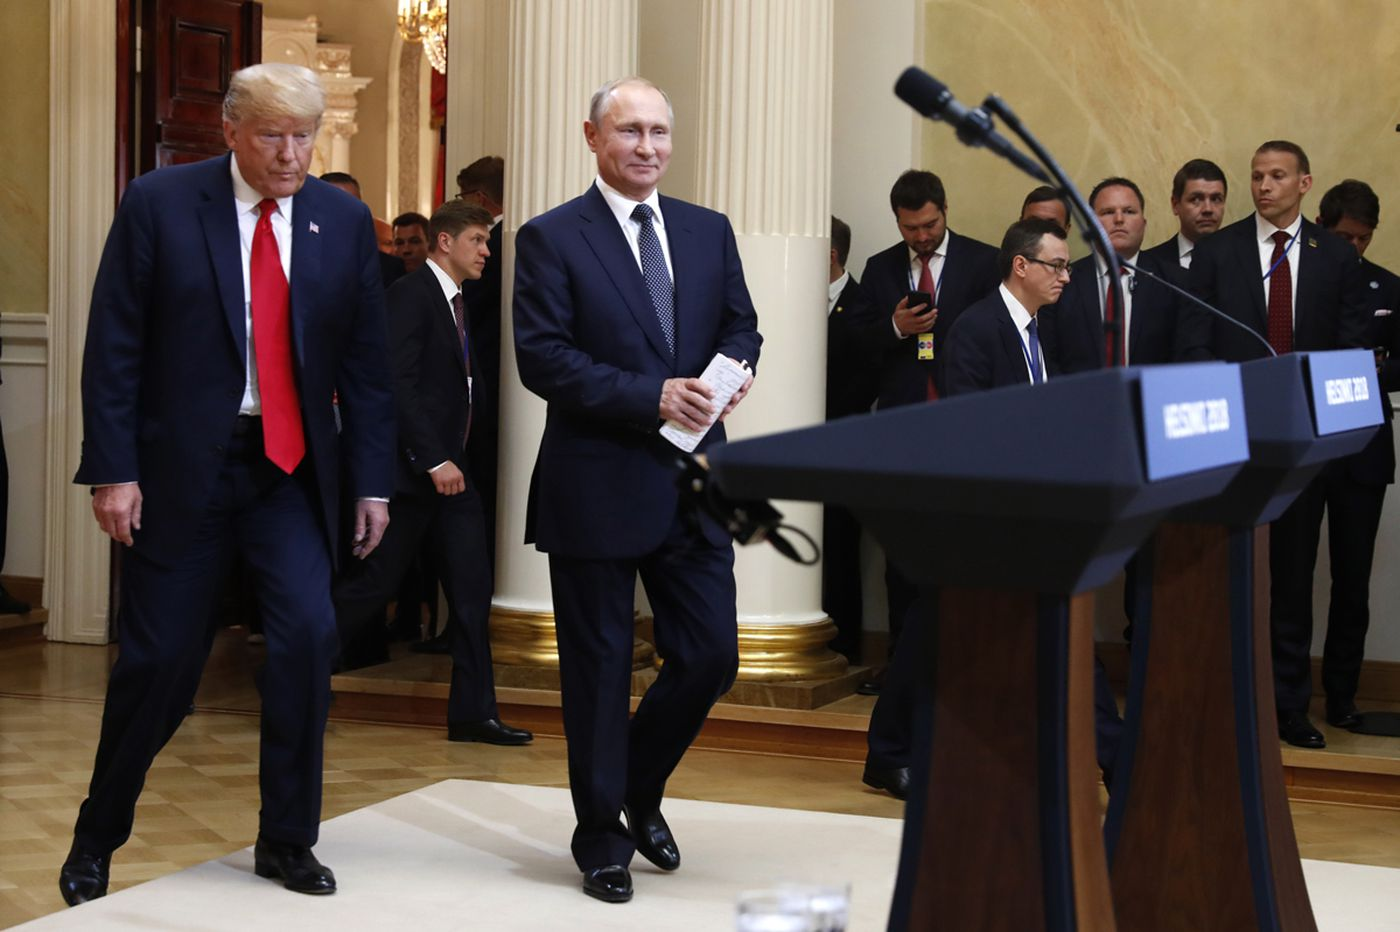 Trump's comments alongside Putin criticized by both parties as 'disgraceful,' 'treasonous' and 'shameful'